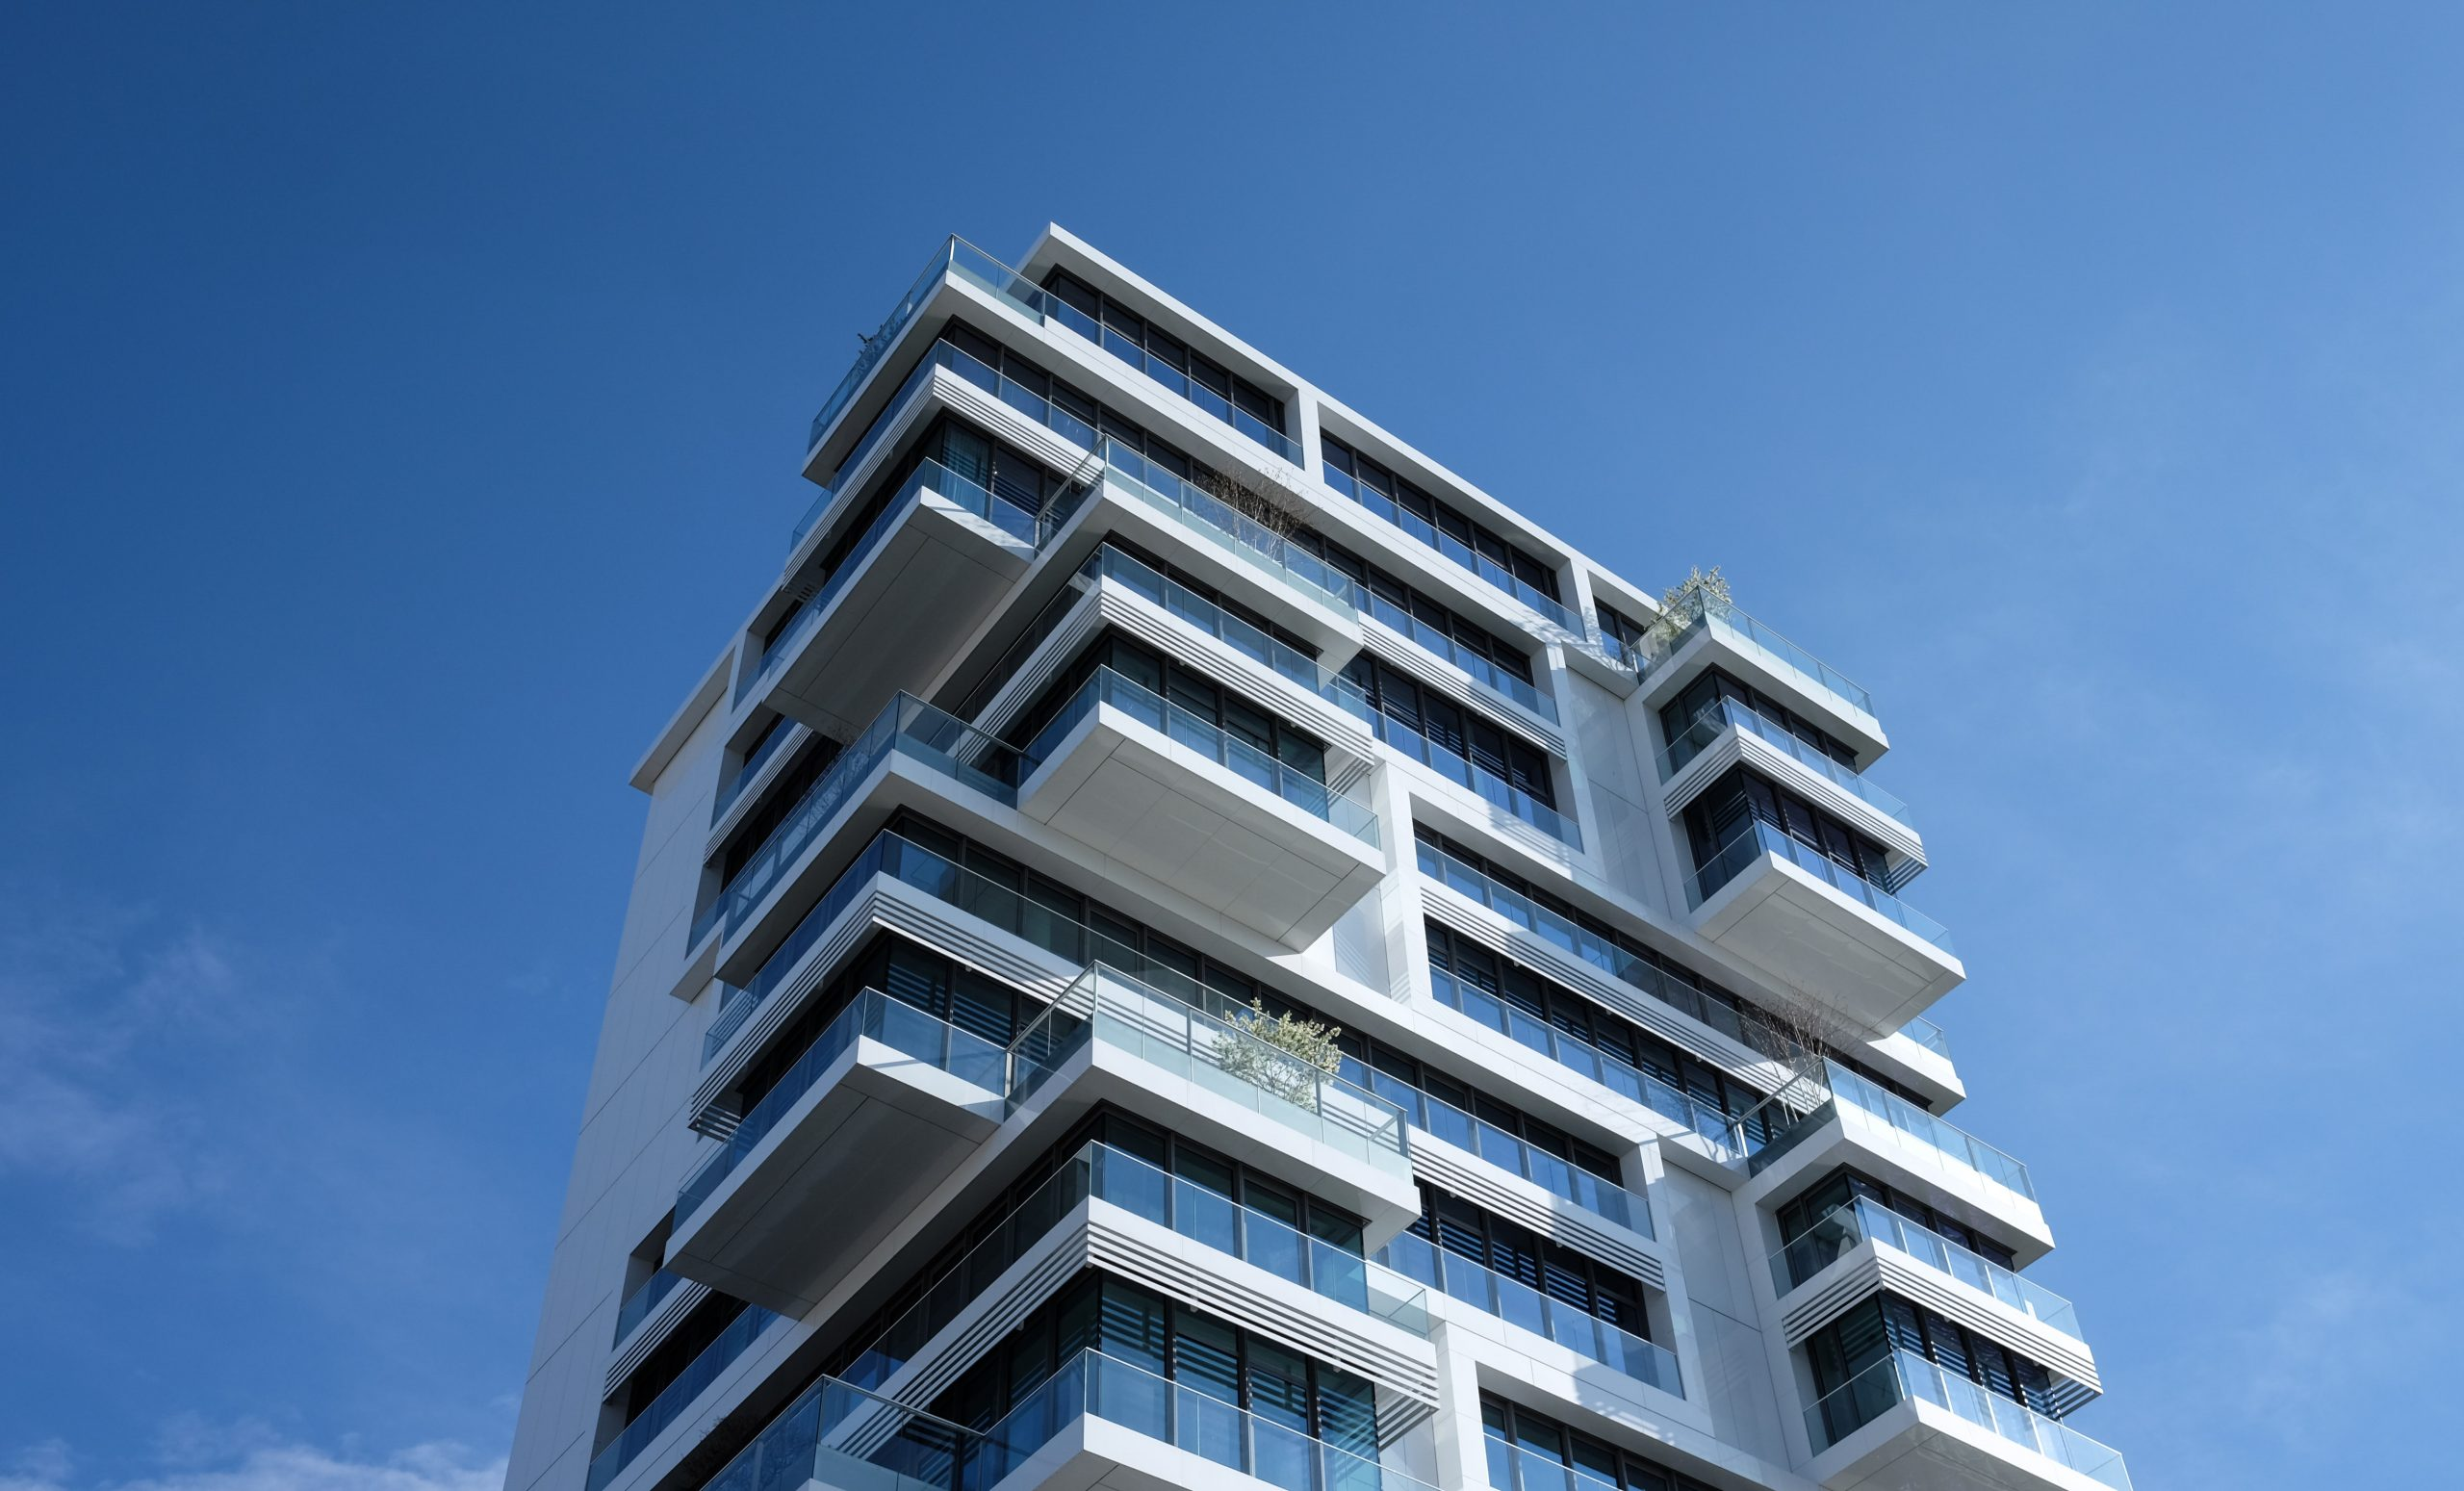 A low angle show of condo building centered in front of a bright blue sky.